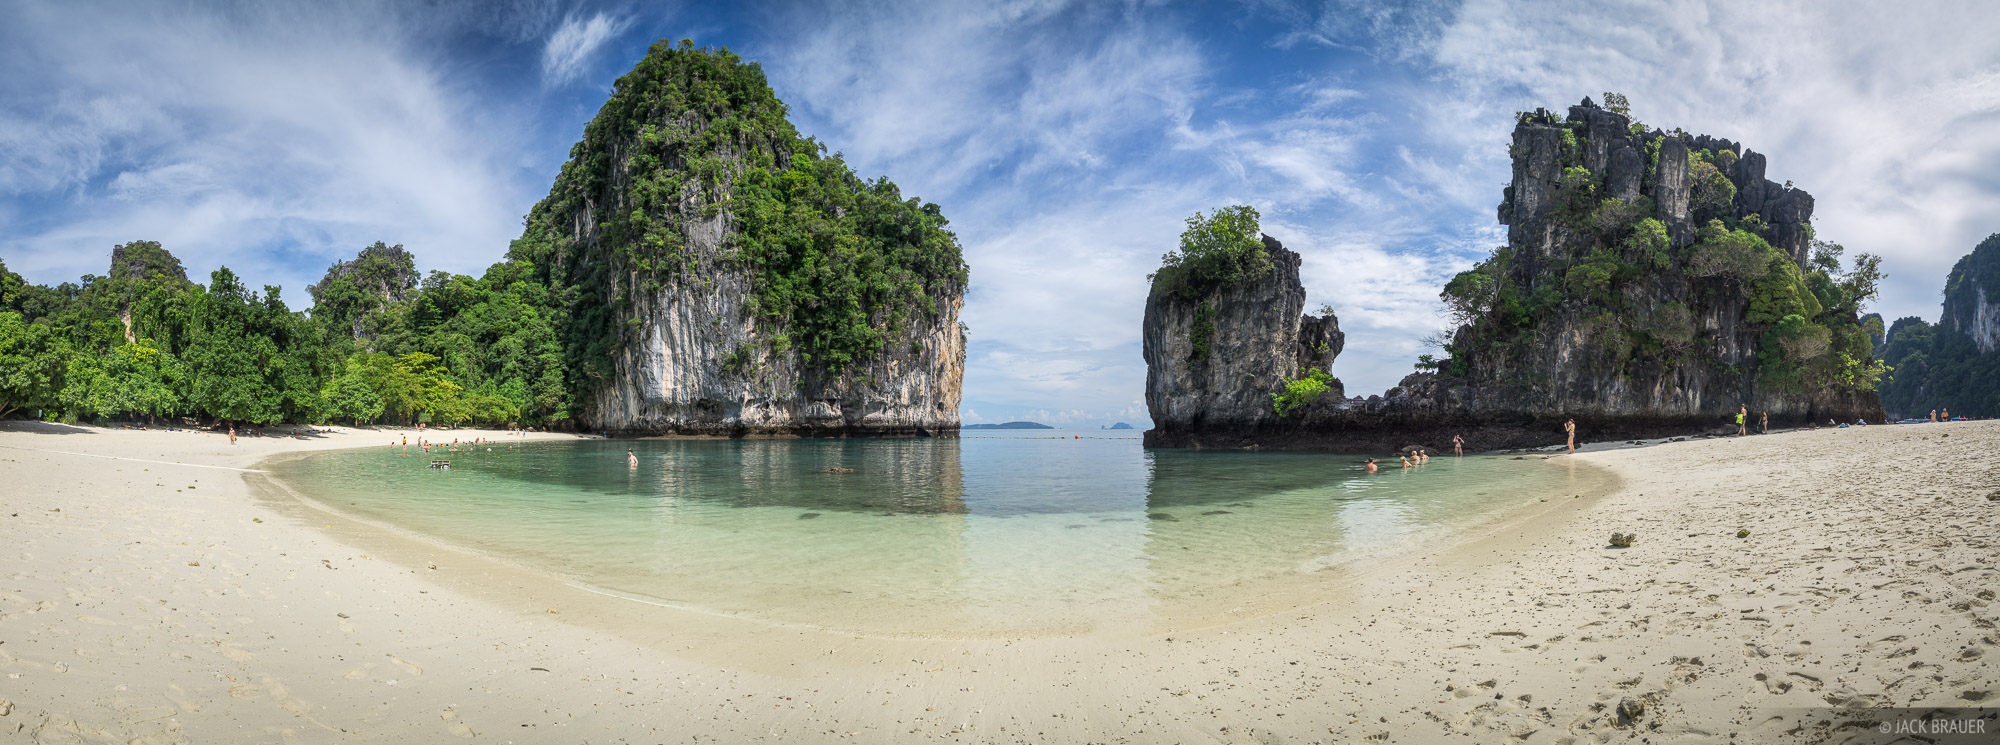 Ko Hong, Thailand, Andaman Sea, beach, panorama